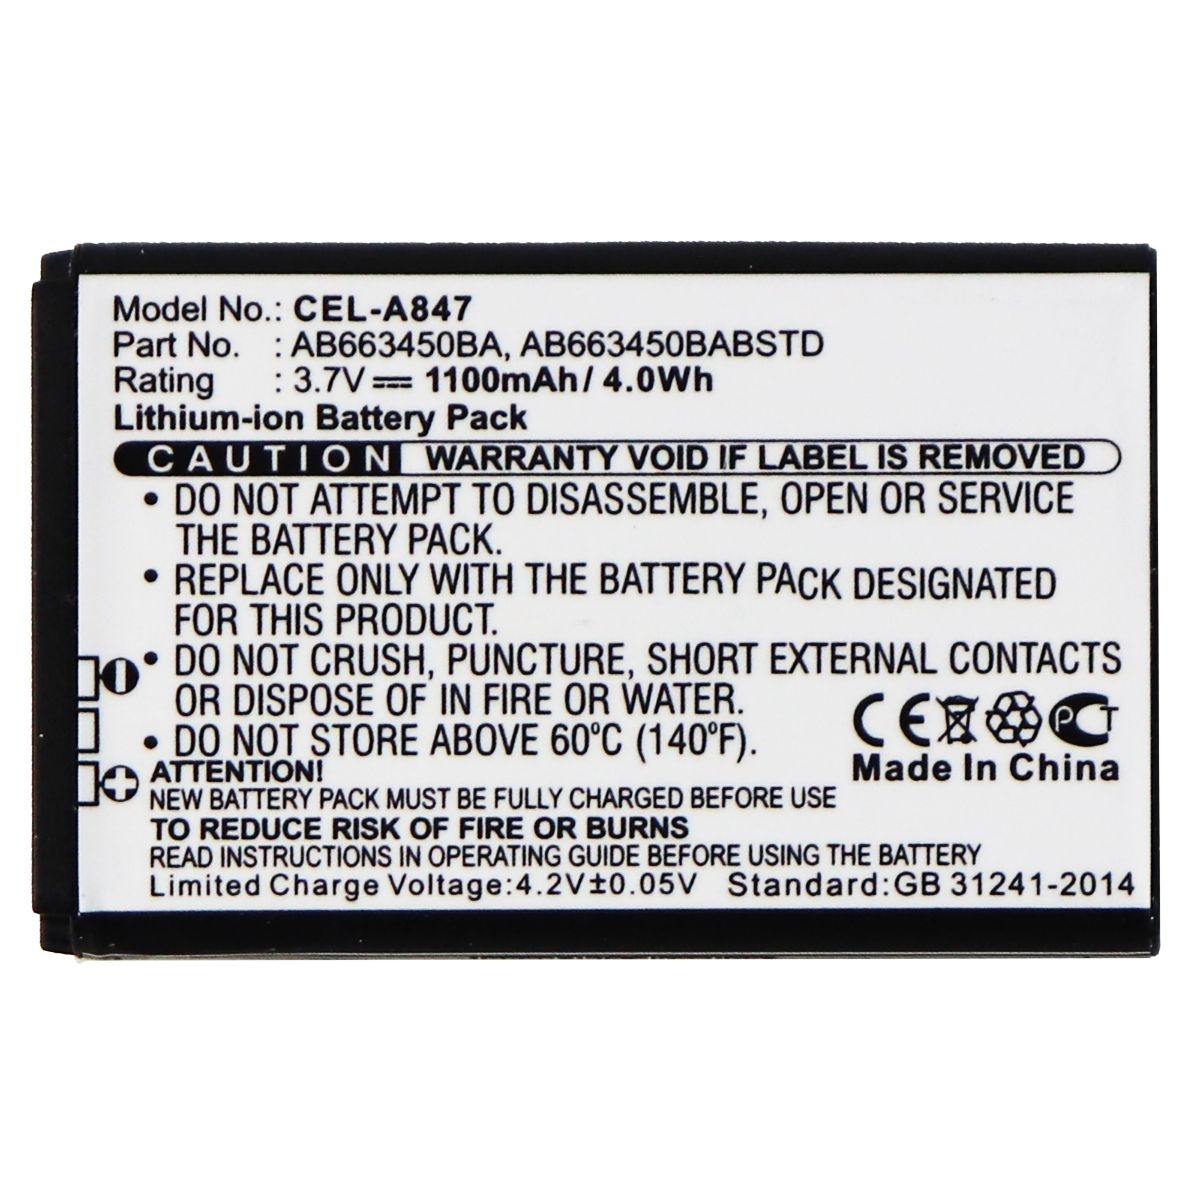 UltraLast Rechargeable Battery for Select Samsung Smartphones - CEL-A847